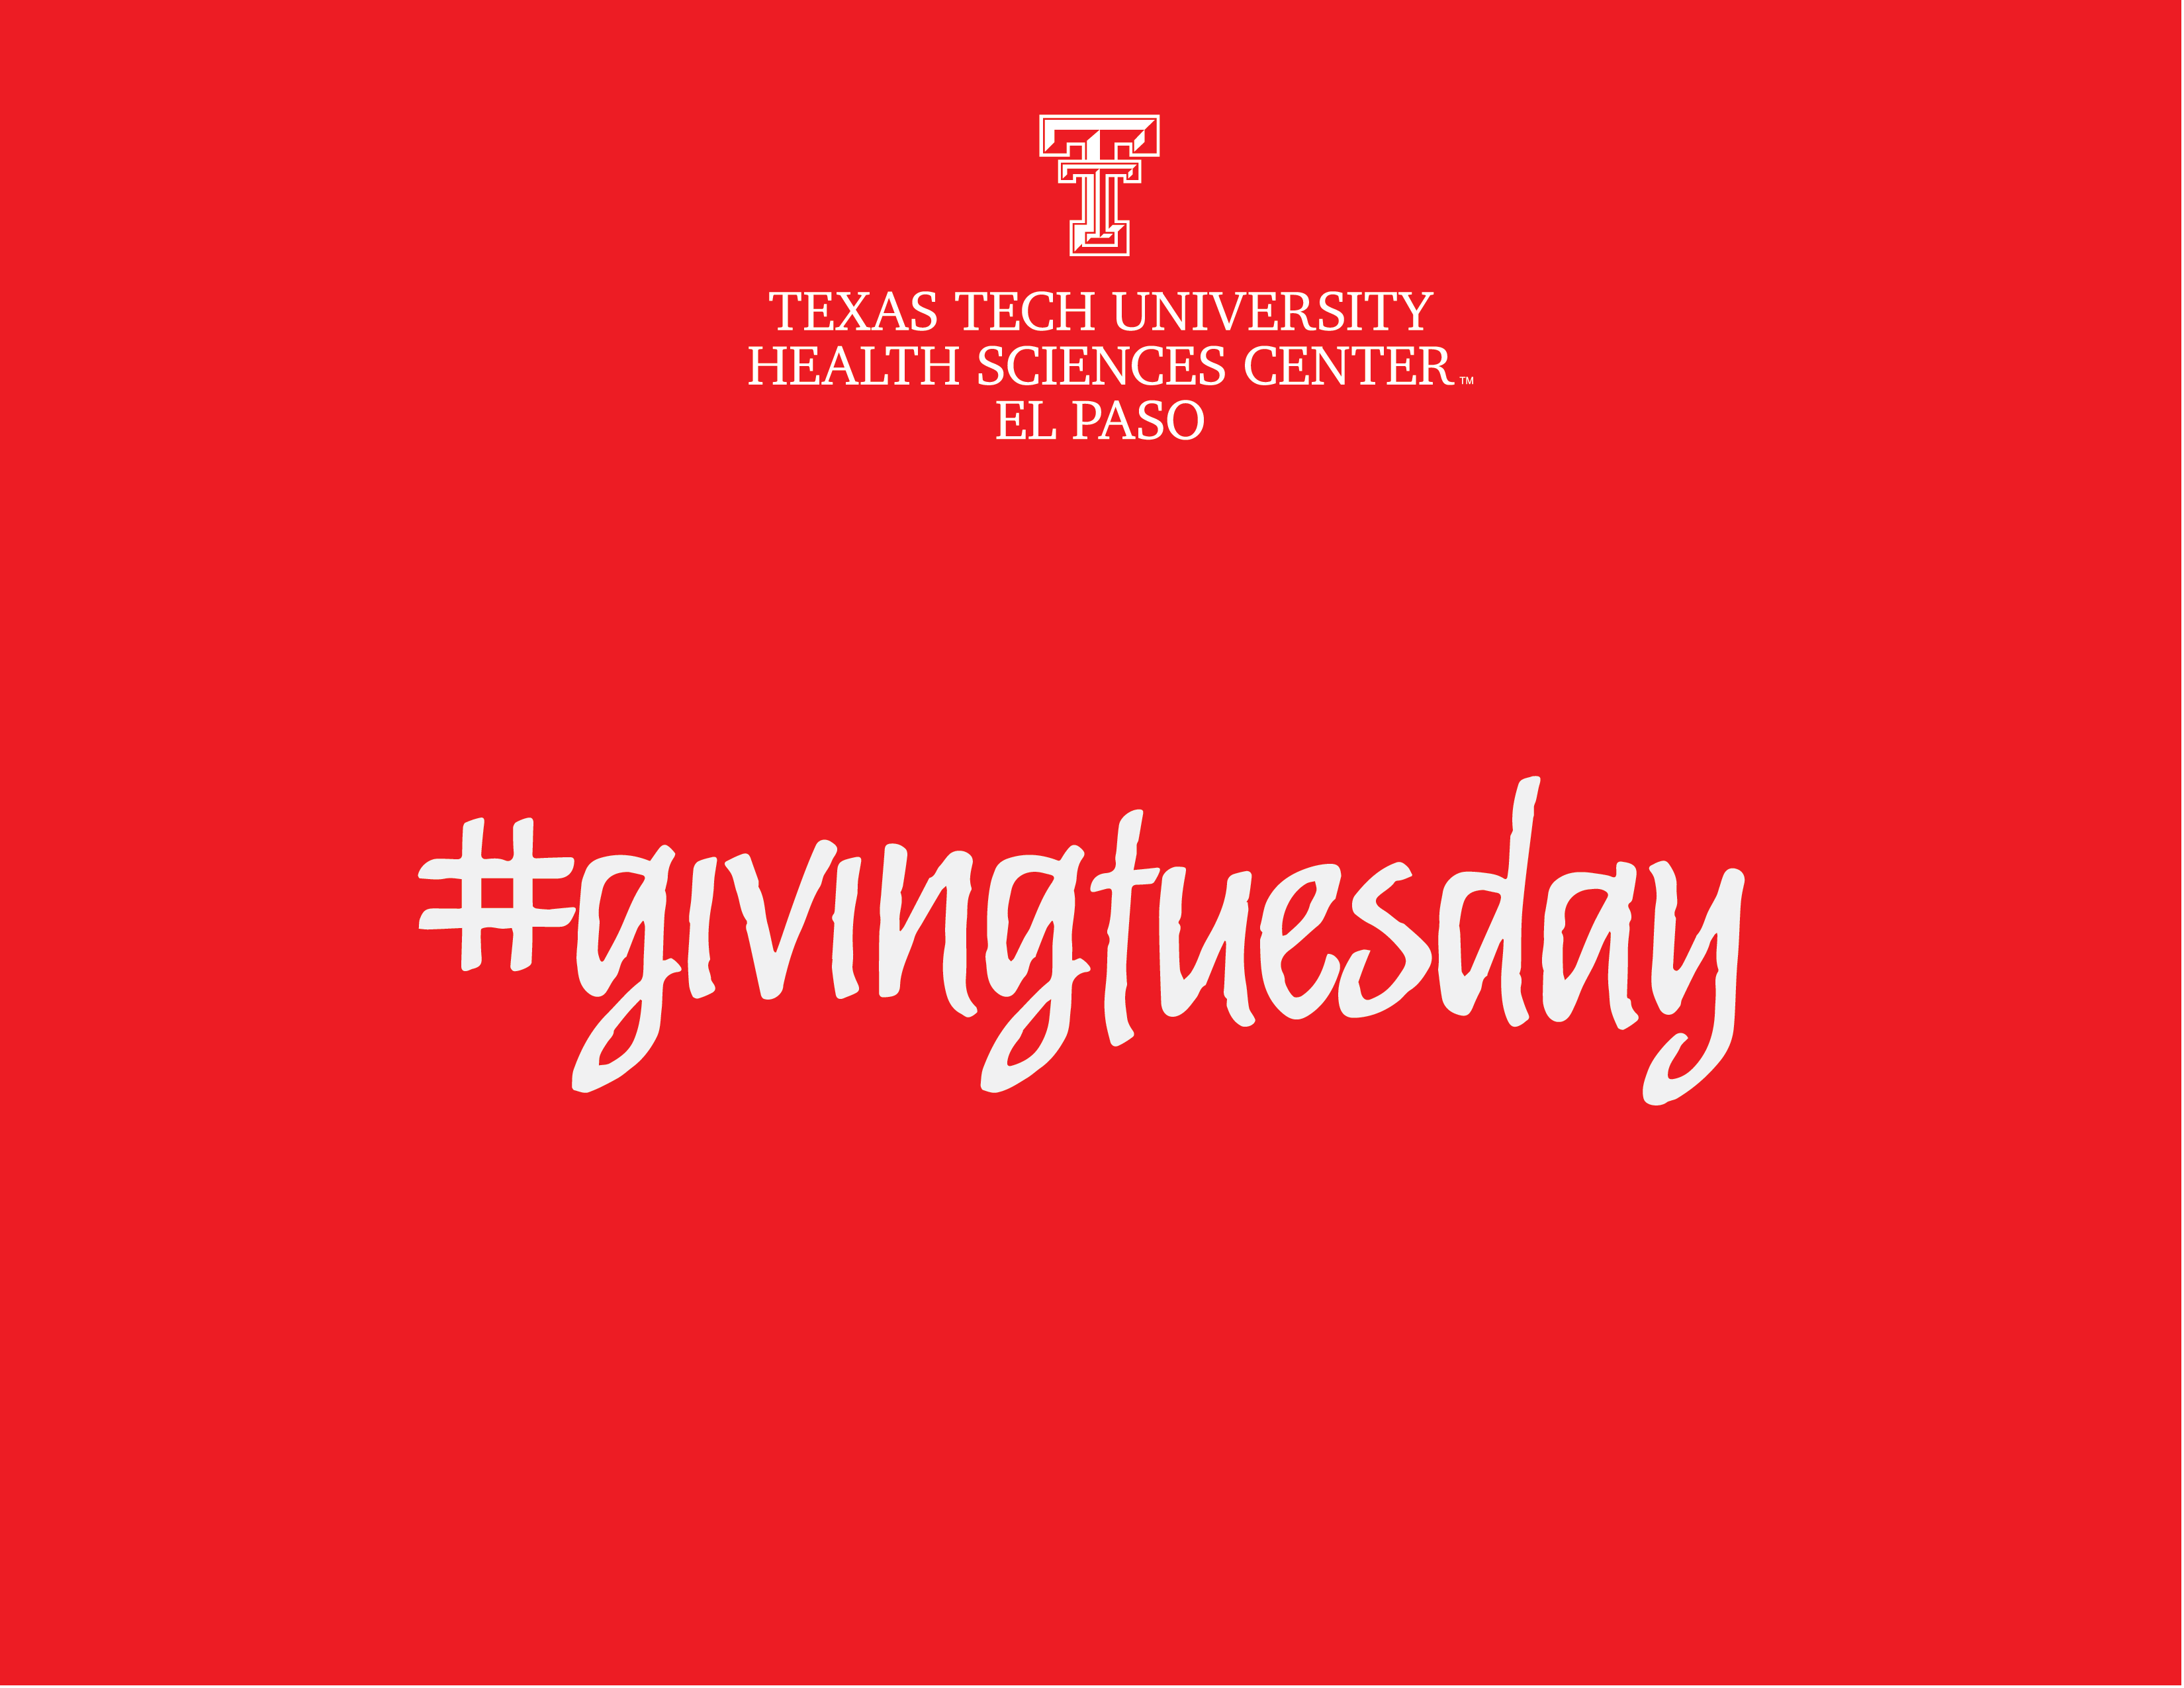 TTUHSC El Paso Encourages Giving on Tuesday